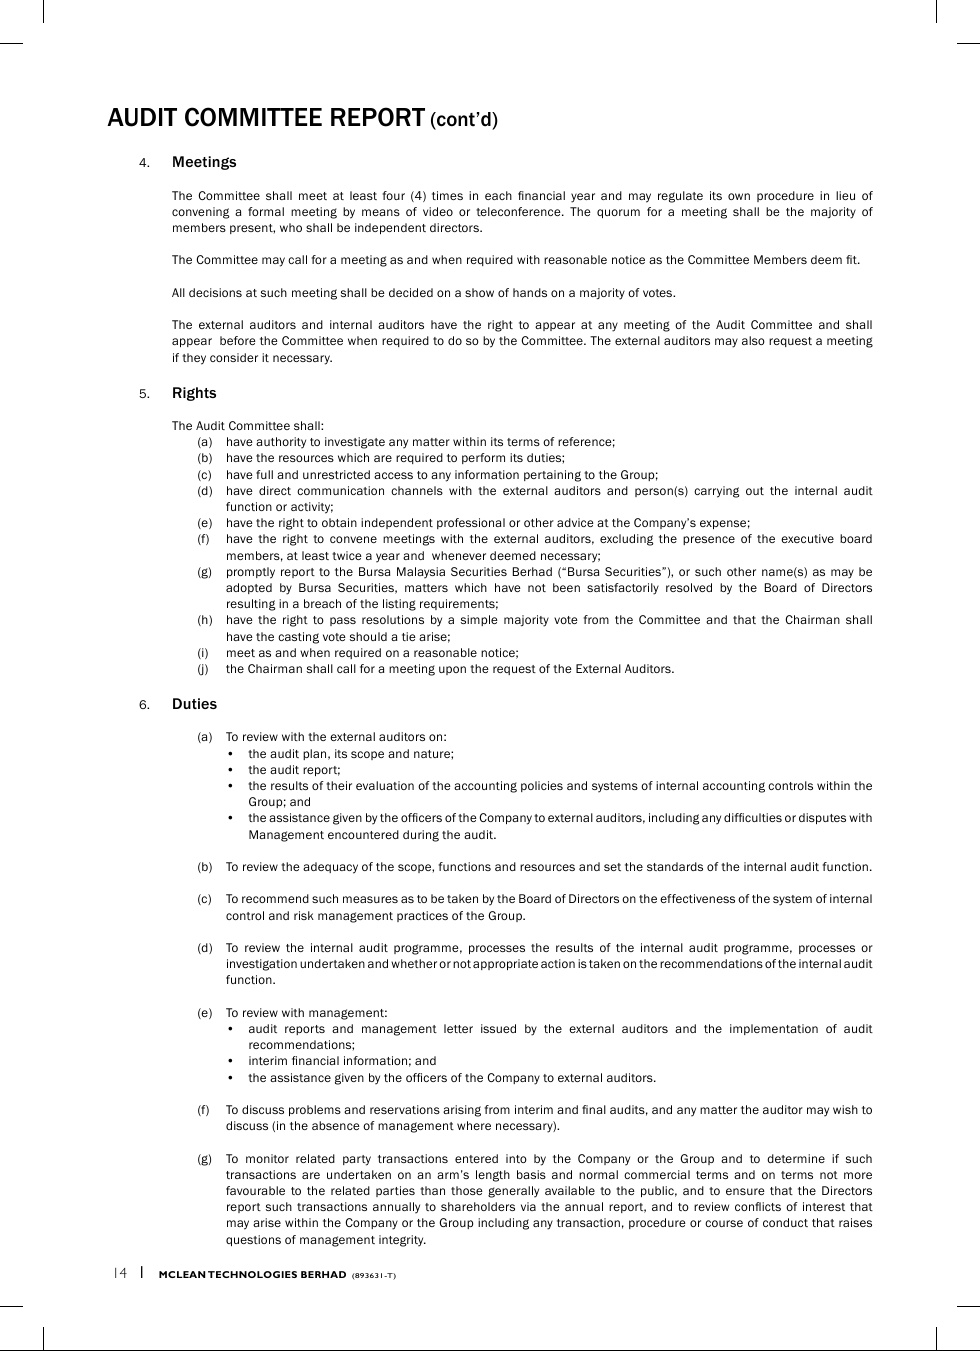 Chapter 4 thesis sample quantitative questions